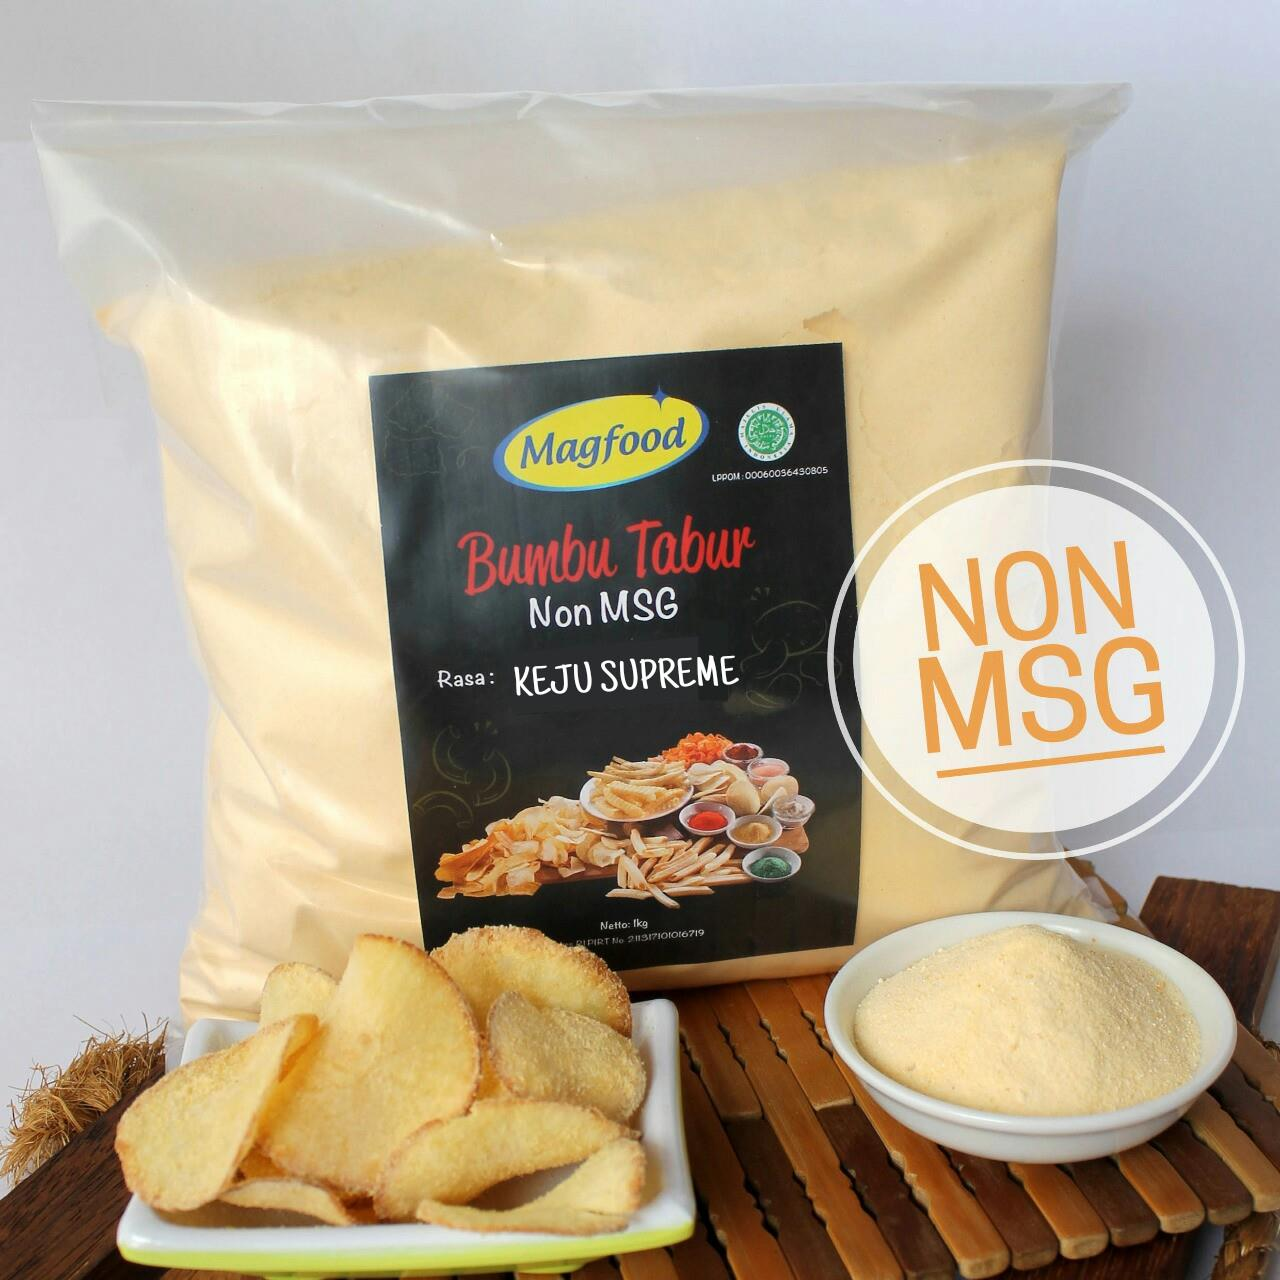 Sell Magfood Cheese Supreme Non Msg Packaging Plastic 1 Kg From Bumbu Tabur Pedas Manis 1kg Indonesia By Female Foodpreneurcheap Price